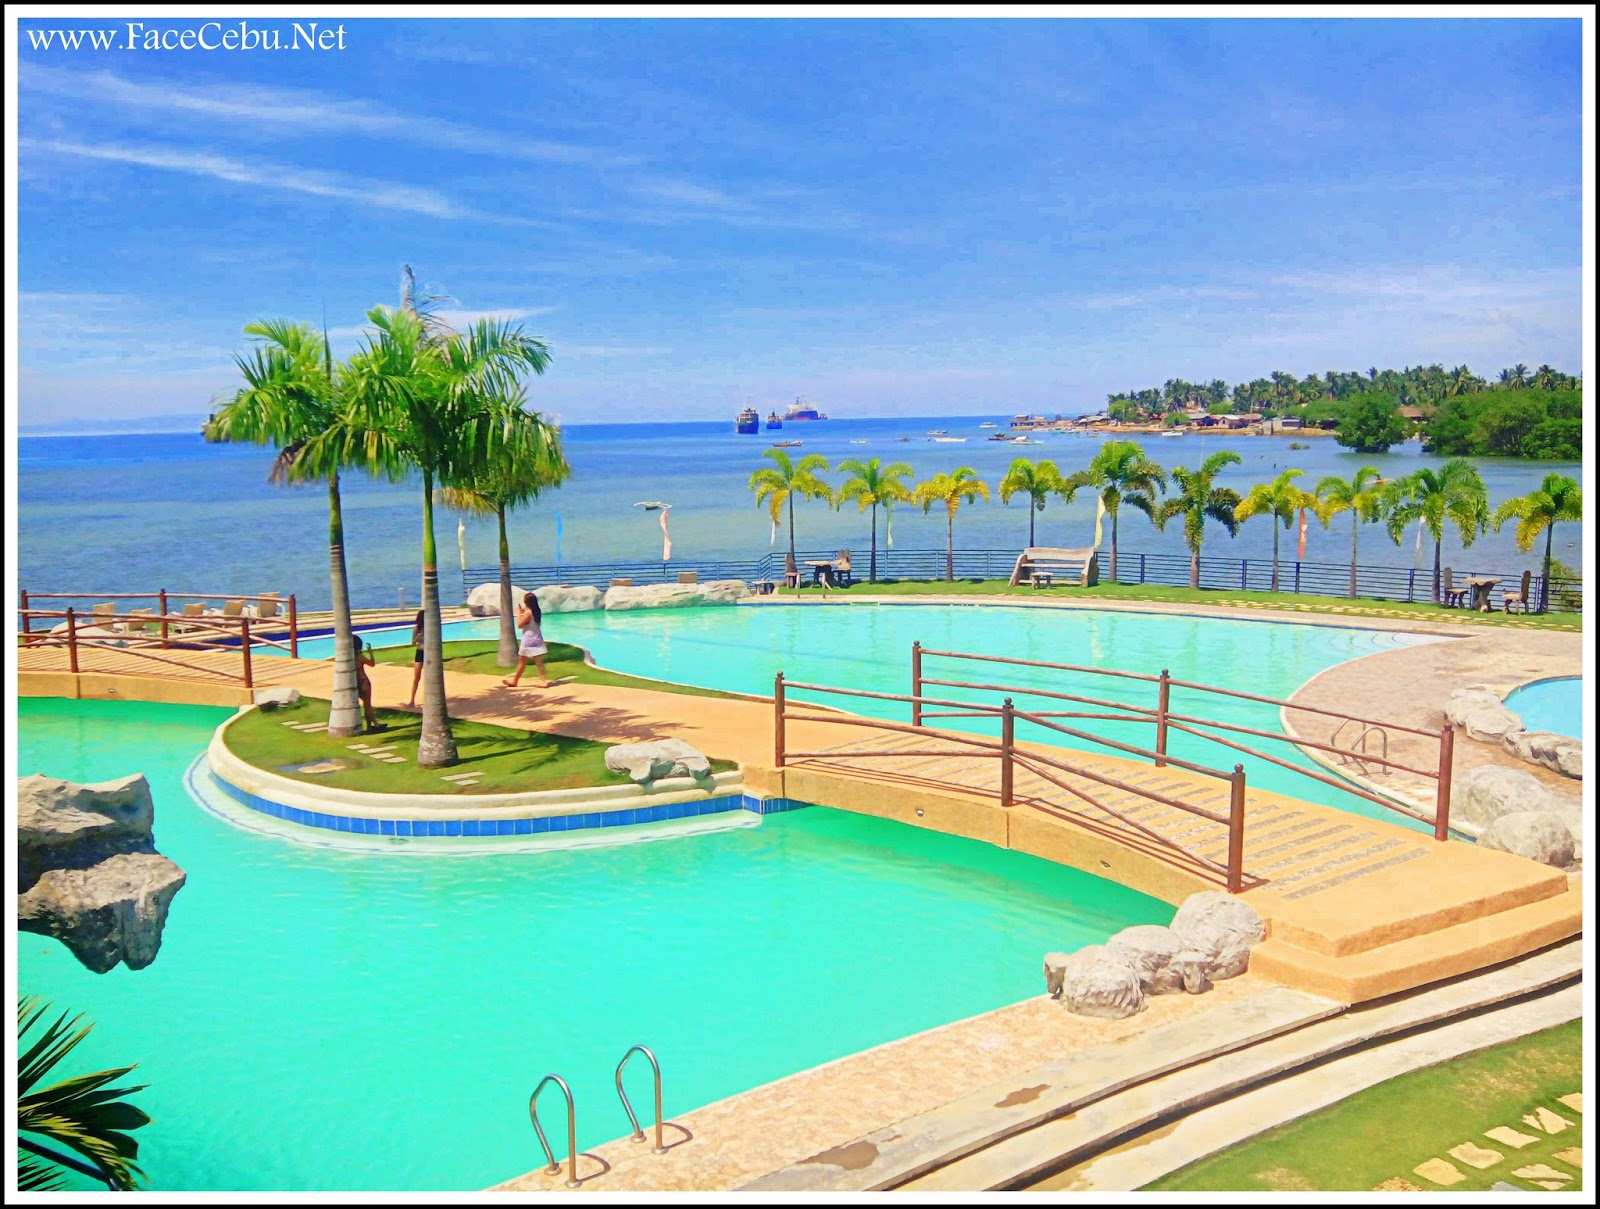 Visiting Paulo Luna Resort And Spa In San Fernando Cebu